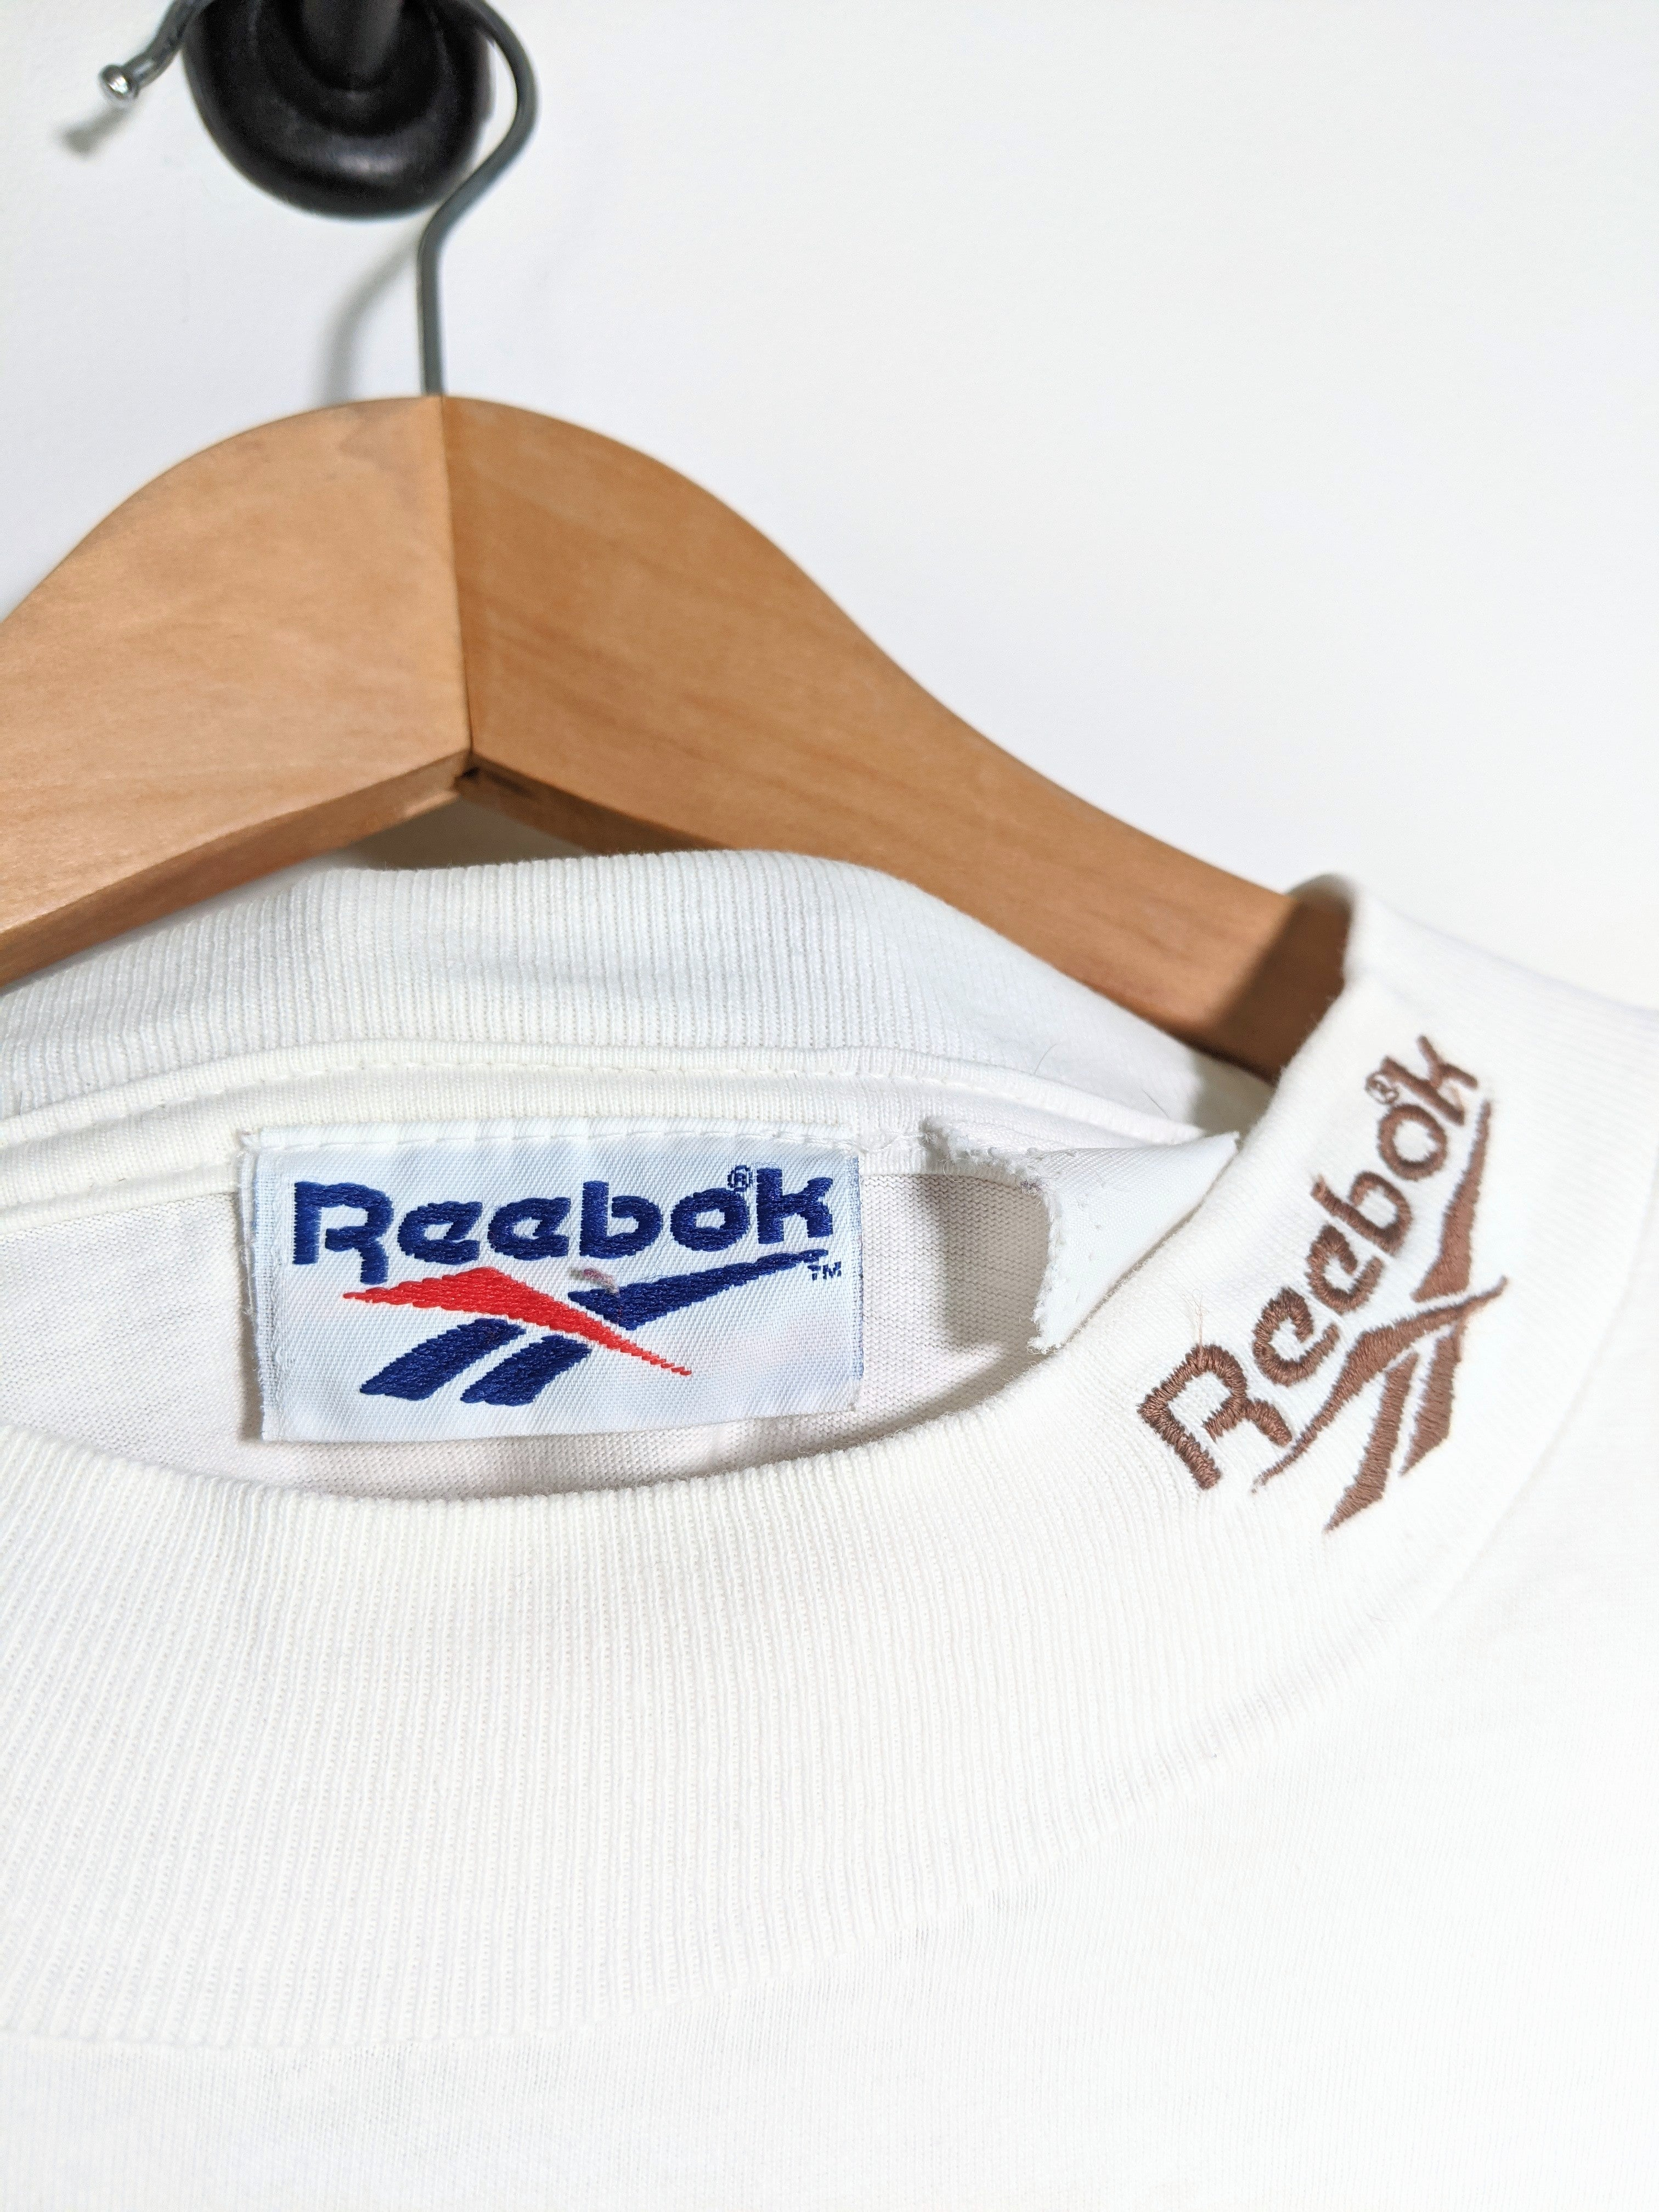 Reebok High Collar Long Sleeve (XL)